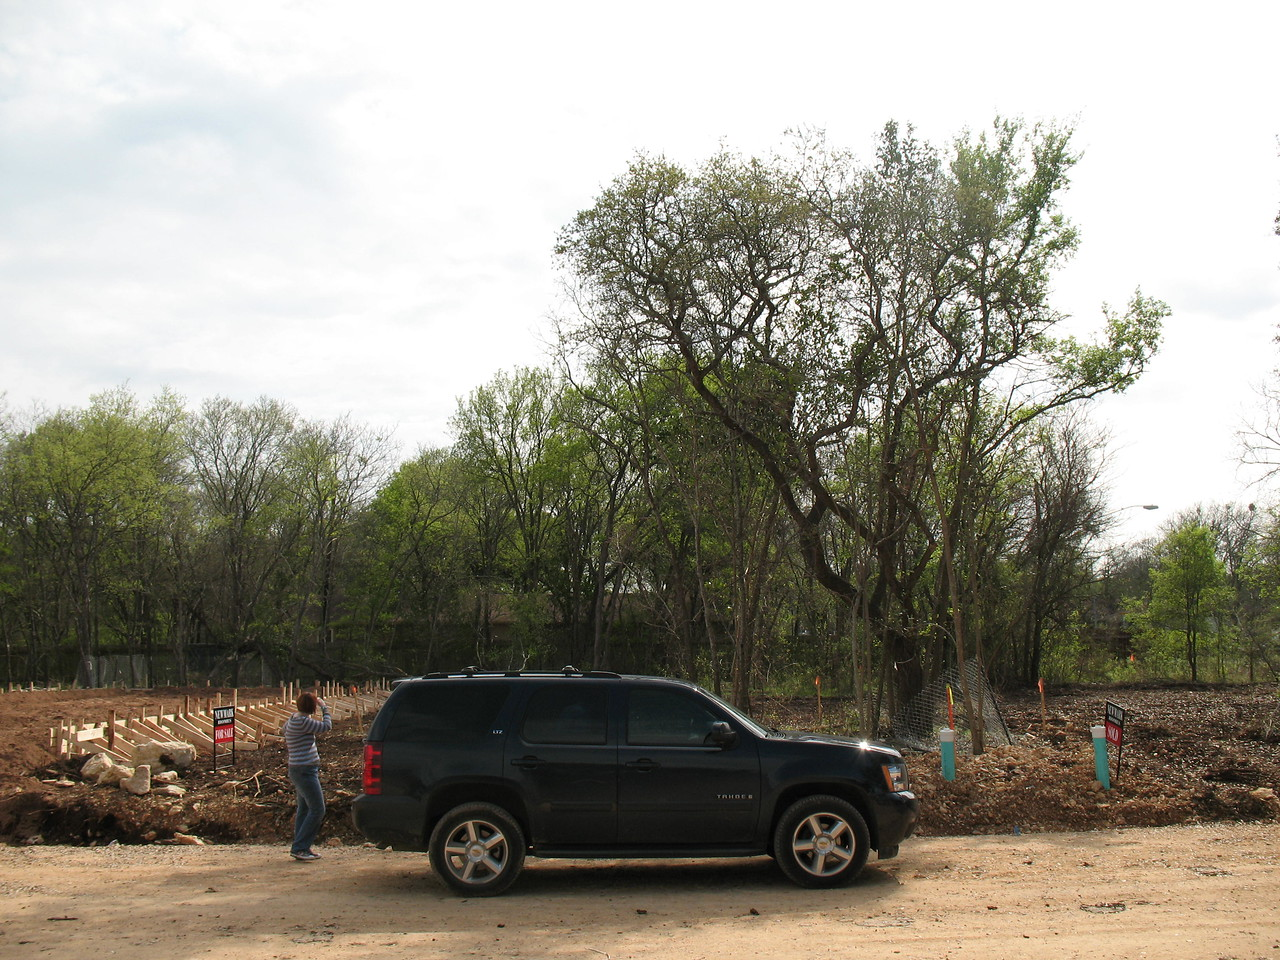 a view of our lot from across the street.  You can see that there will be a view trees in the front as well.